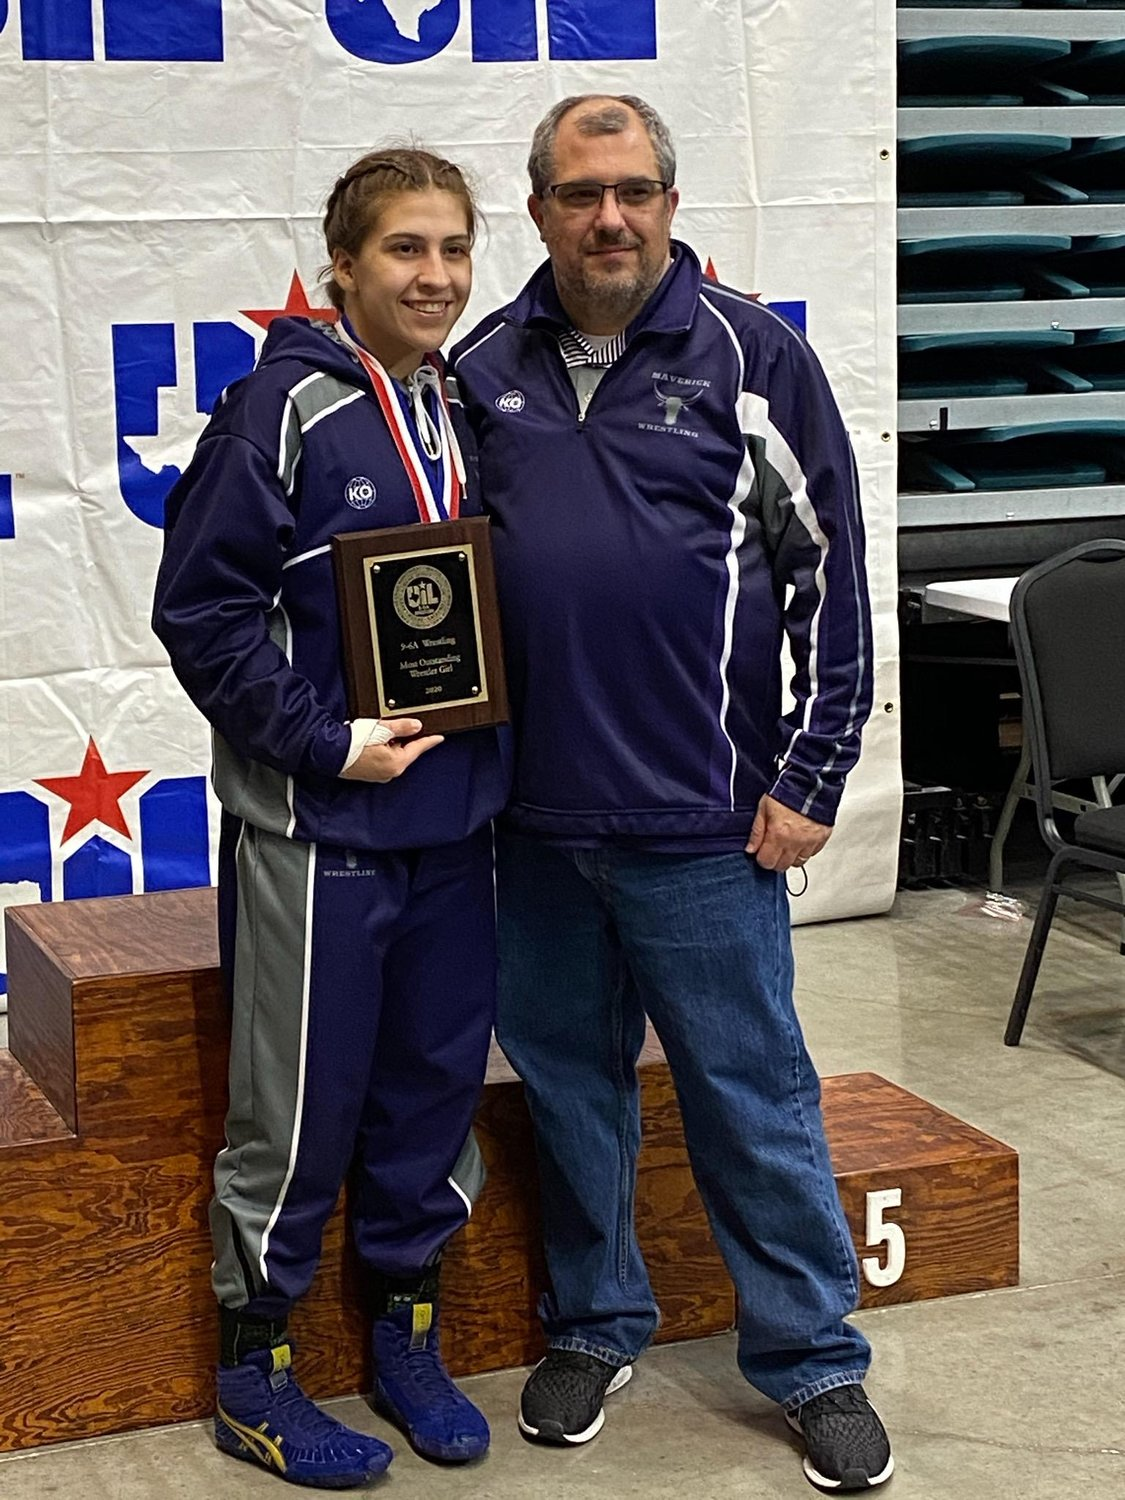 Morton Ranch senior Jordan Suarez, left, poses with coach Mark Balser after being named Most Outstanding Wrestler of the District 9-6A girls championships on Feb. 8 at the Merrell Center.